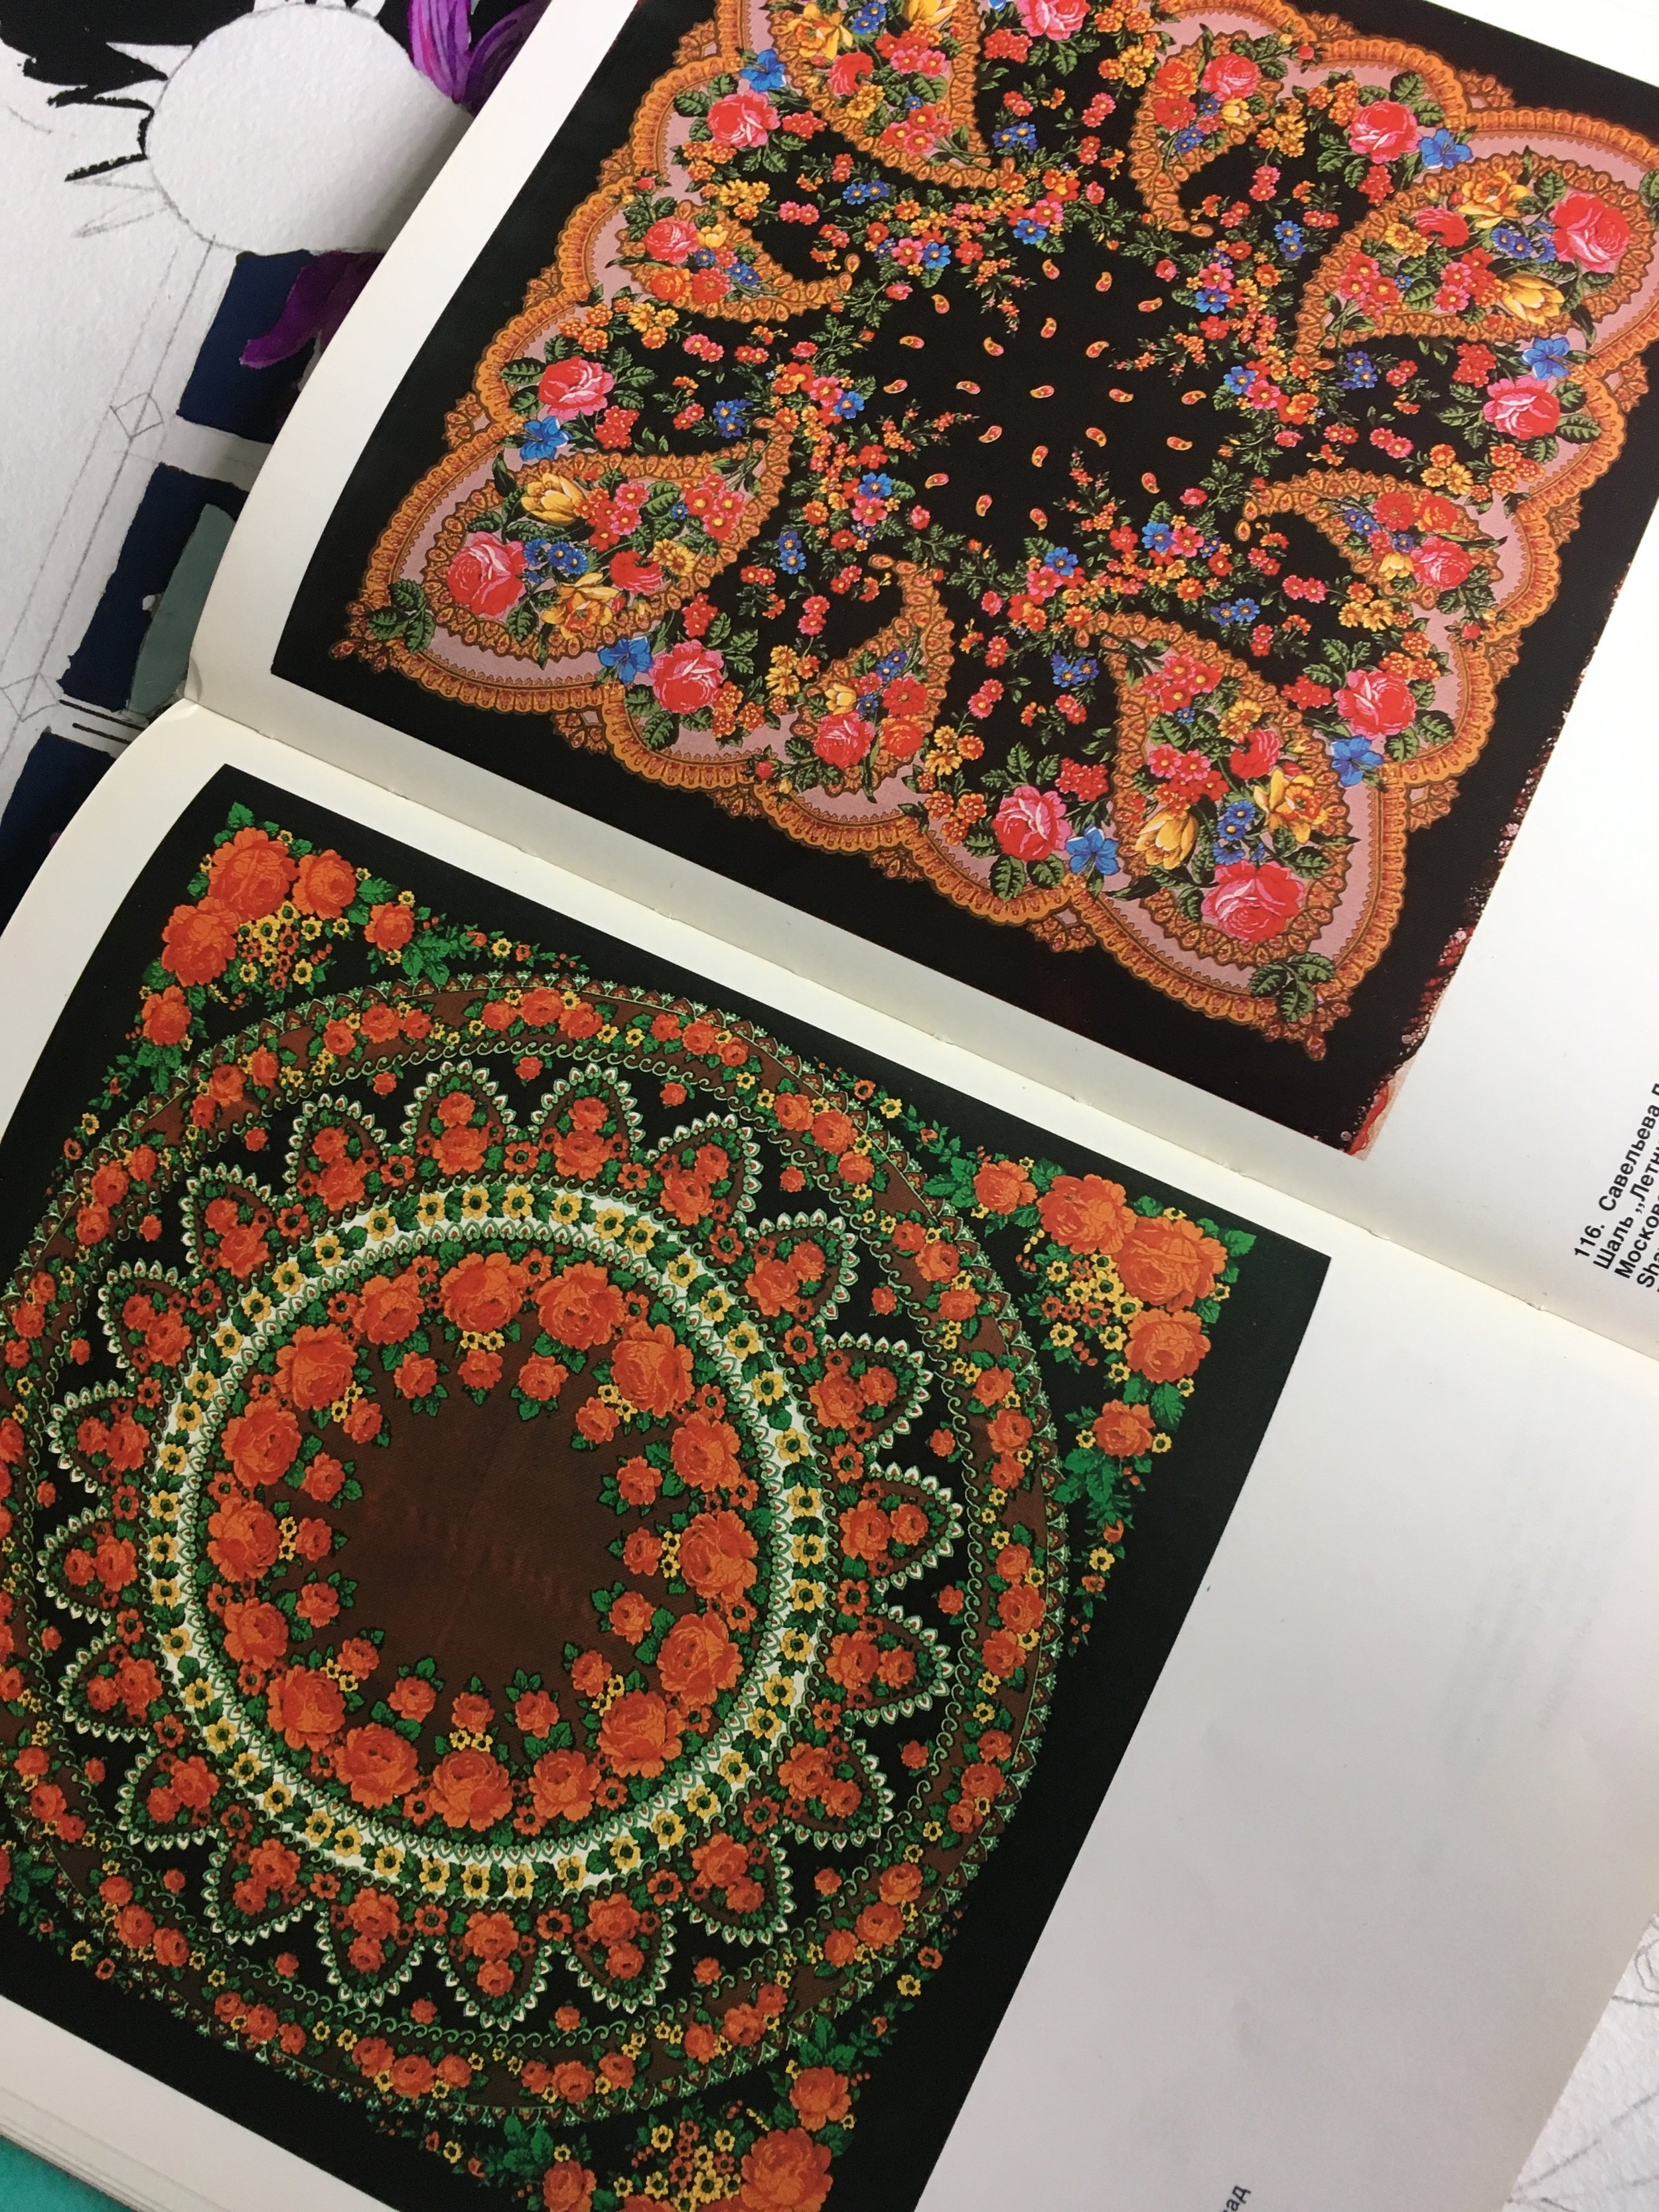 Old book with Russian traditional flower designs